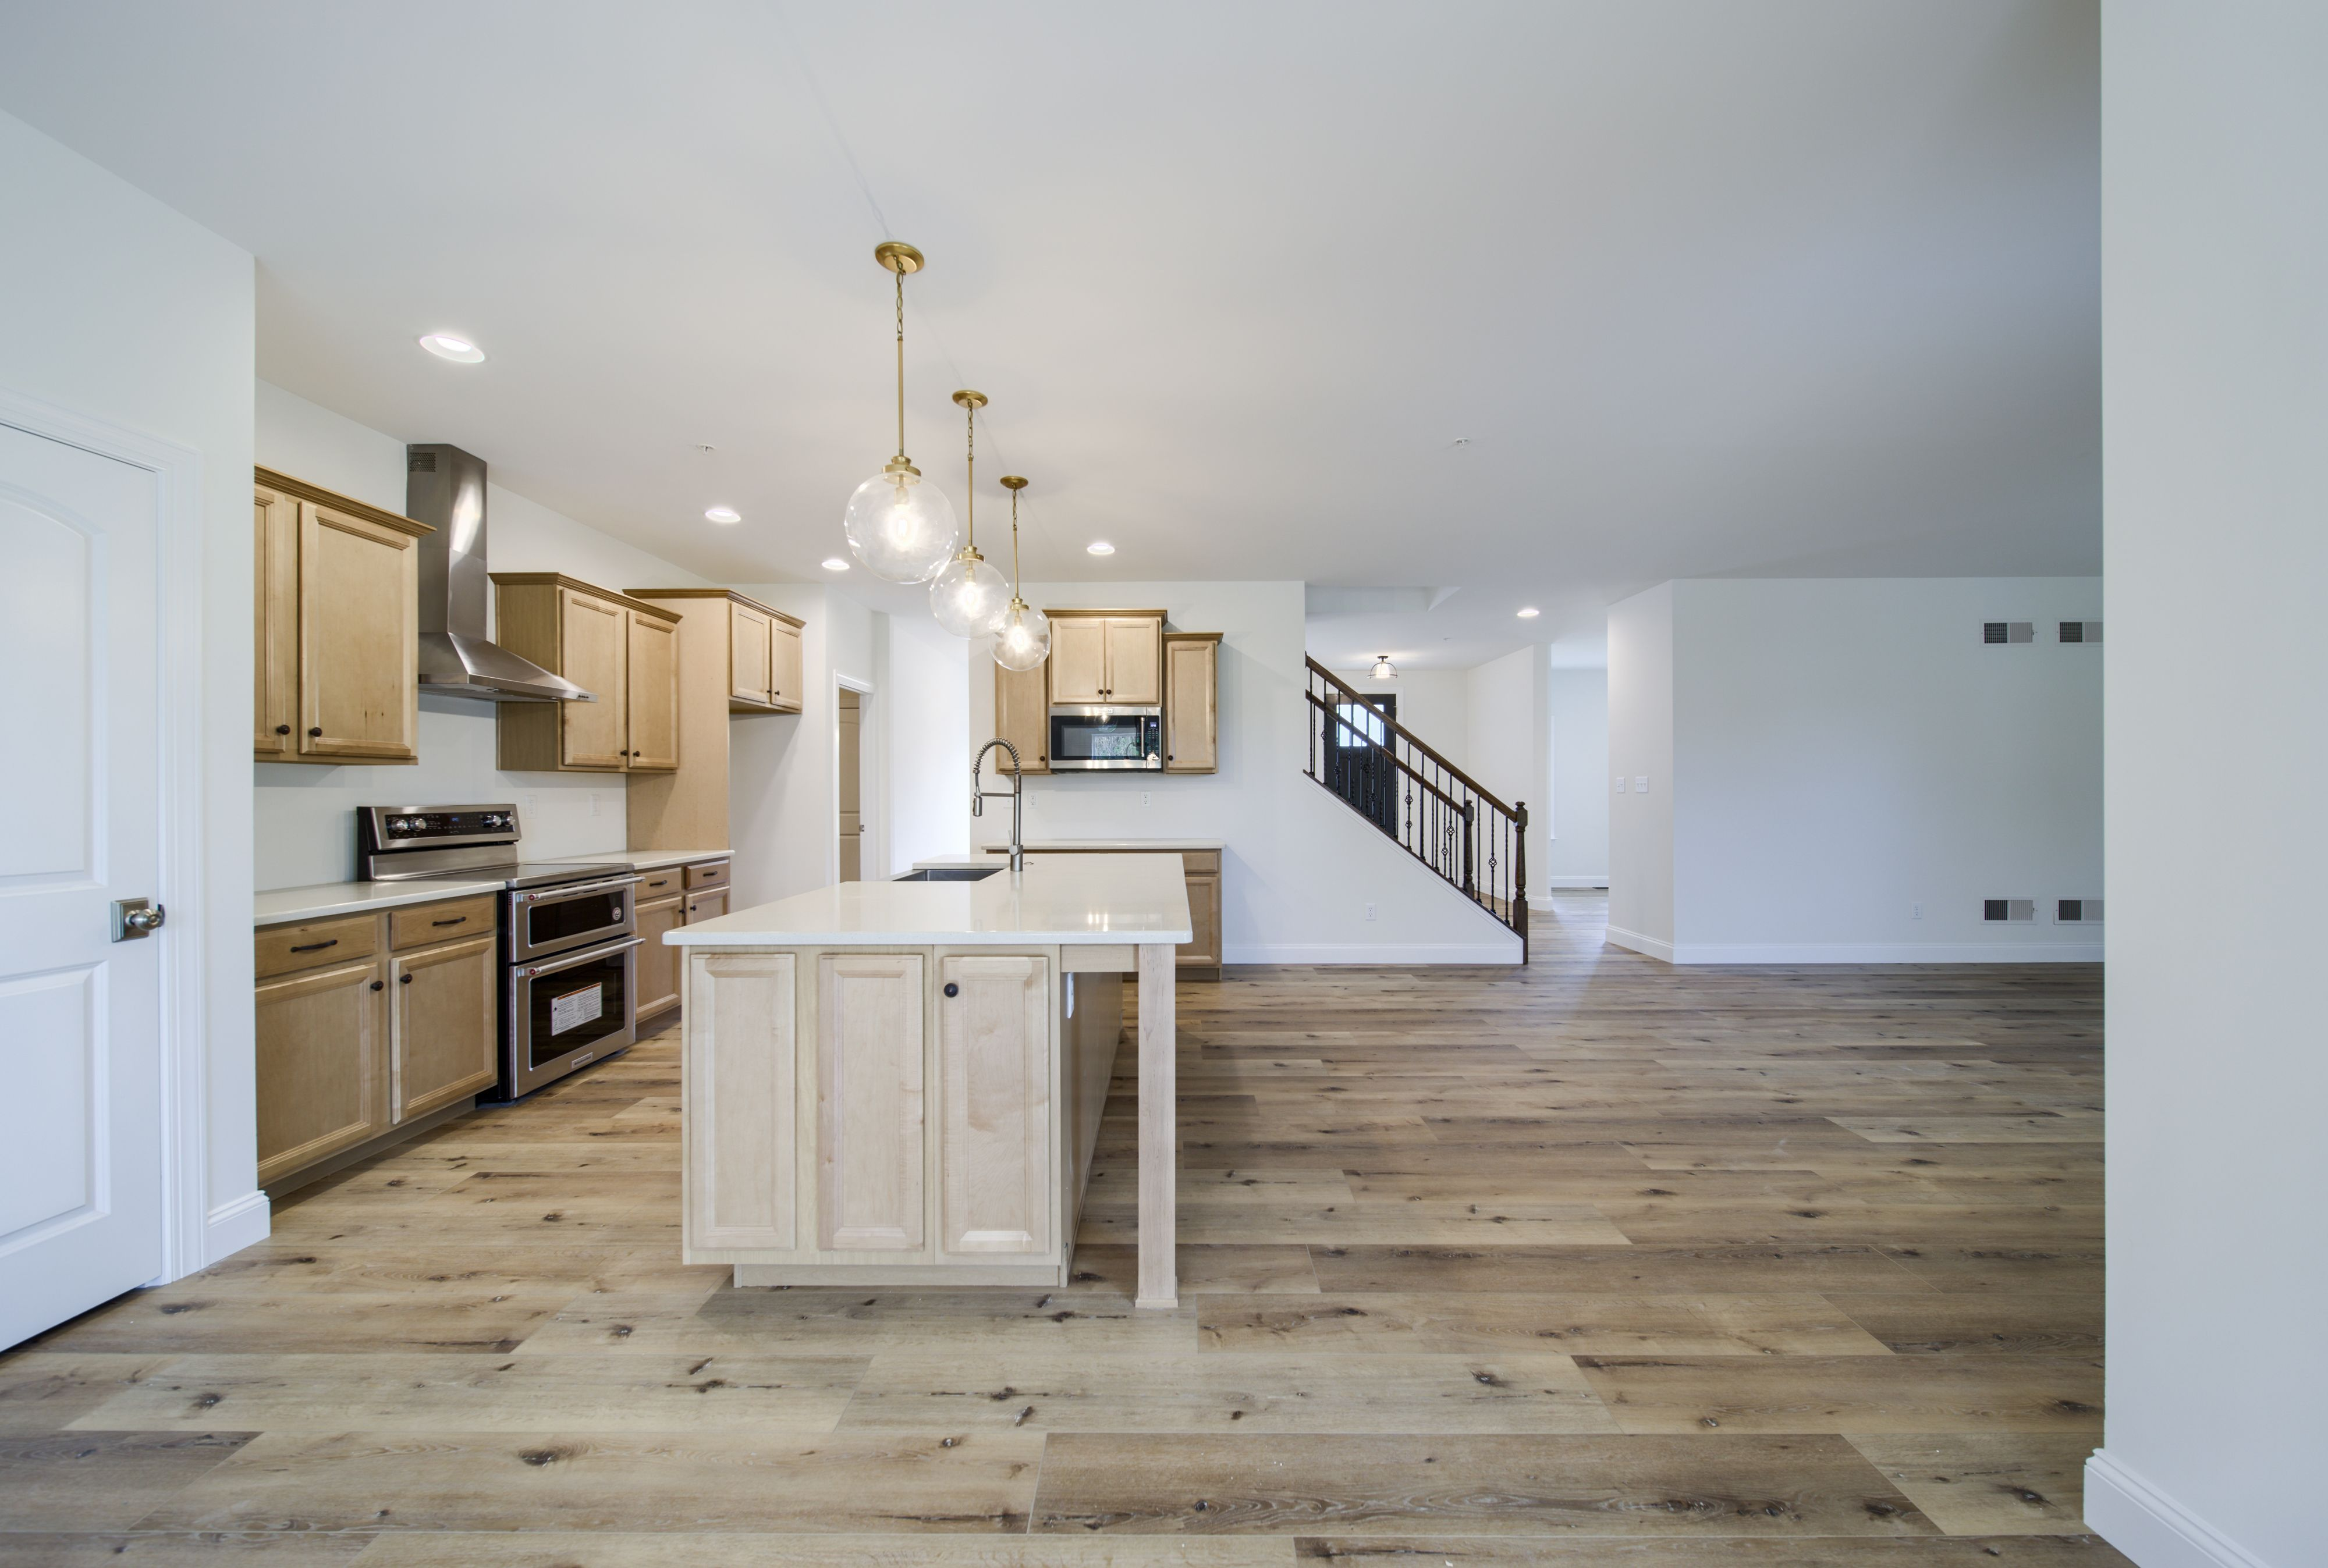 Kitchen featured in the Augusta Farmhouse By Keystone Custom Homes in Baltimore, MD